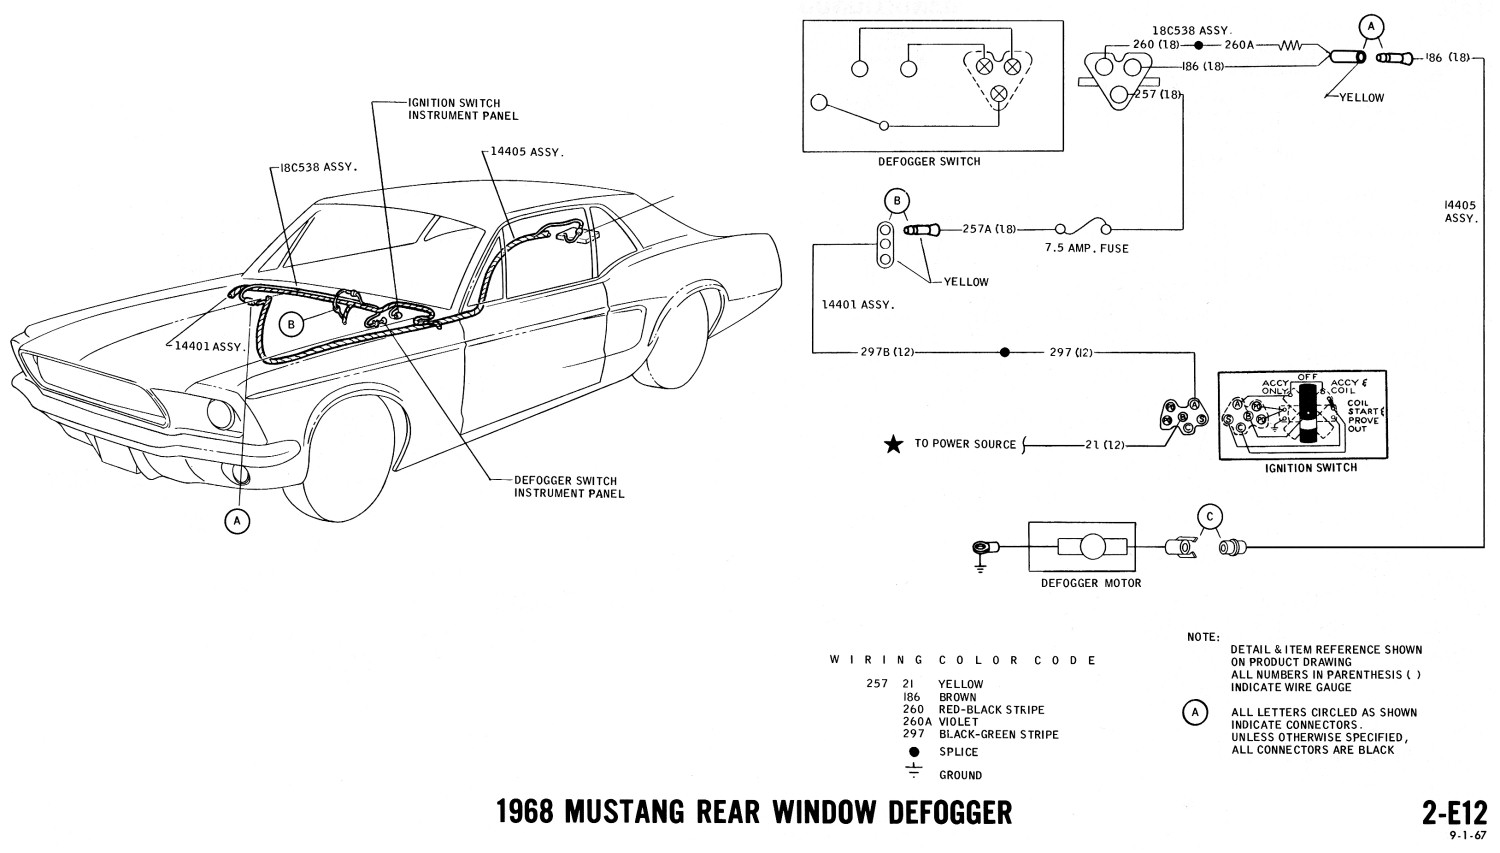 1968 Mustang Convertible Top Switch Wiring Diagram Detailed 1969 Camaro Fuse Box Further Diagrams And Vacuum Schematics Average Joe 1967 Dash